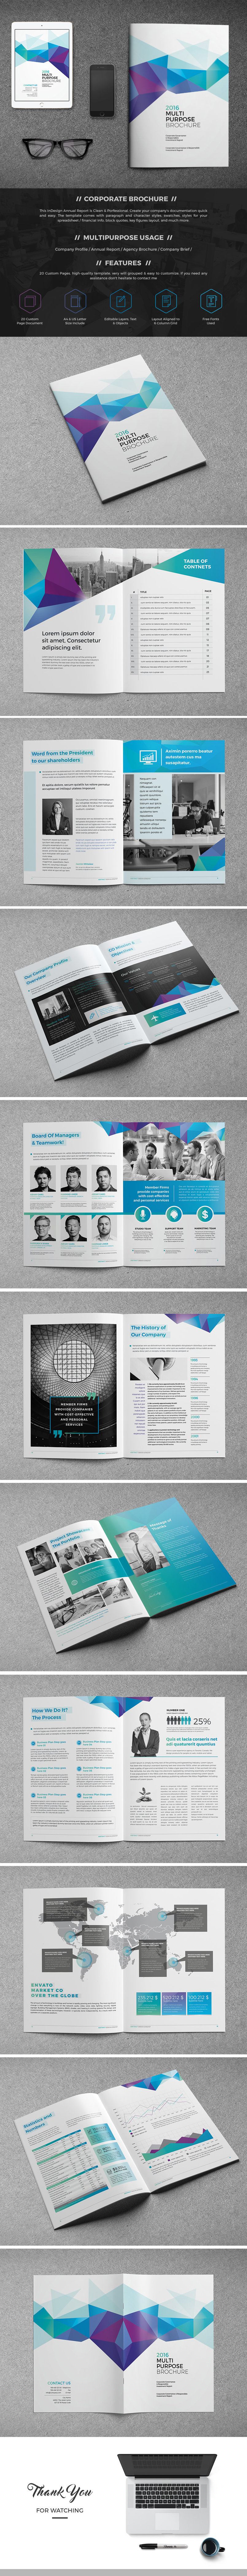 ِAbstract Brochure Template